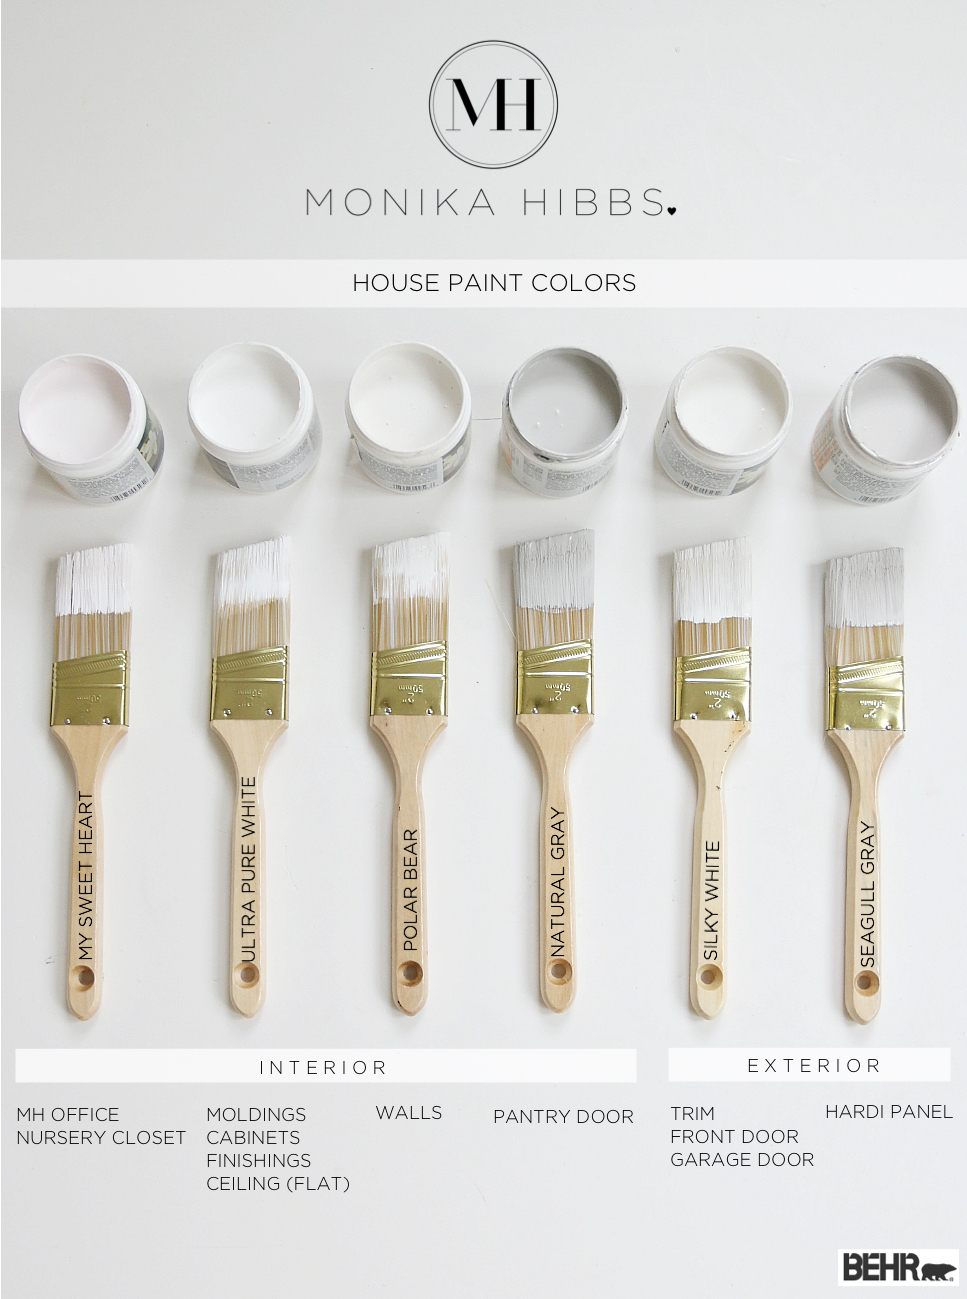 Monika Hibbs House Paint Colors